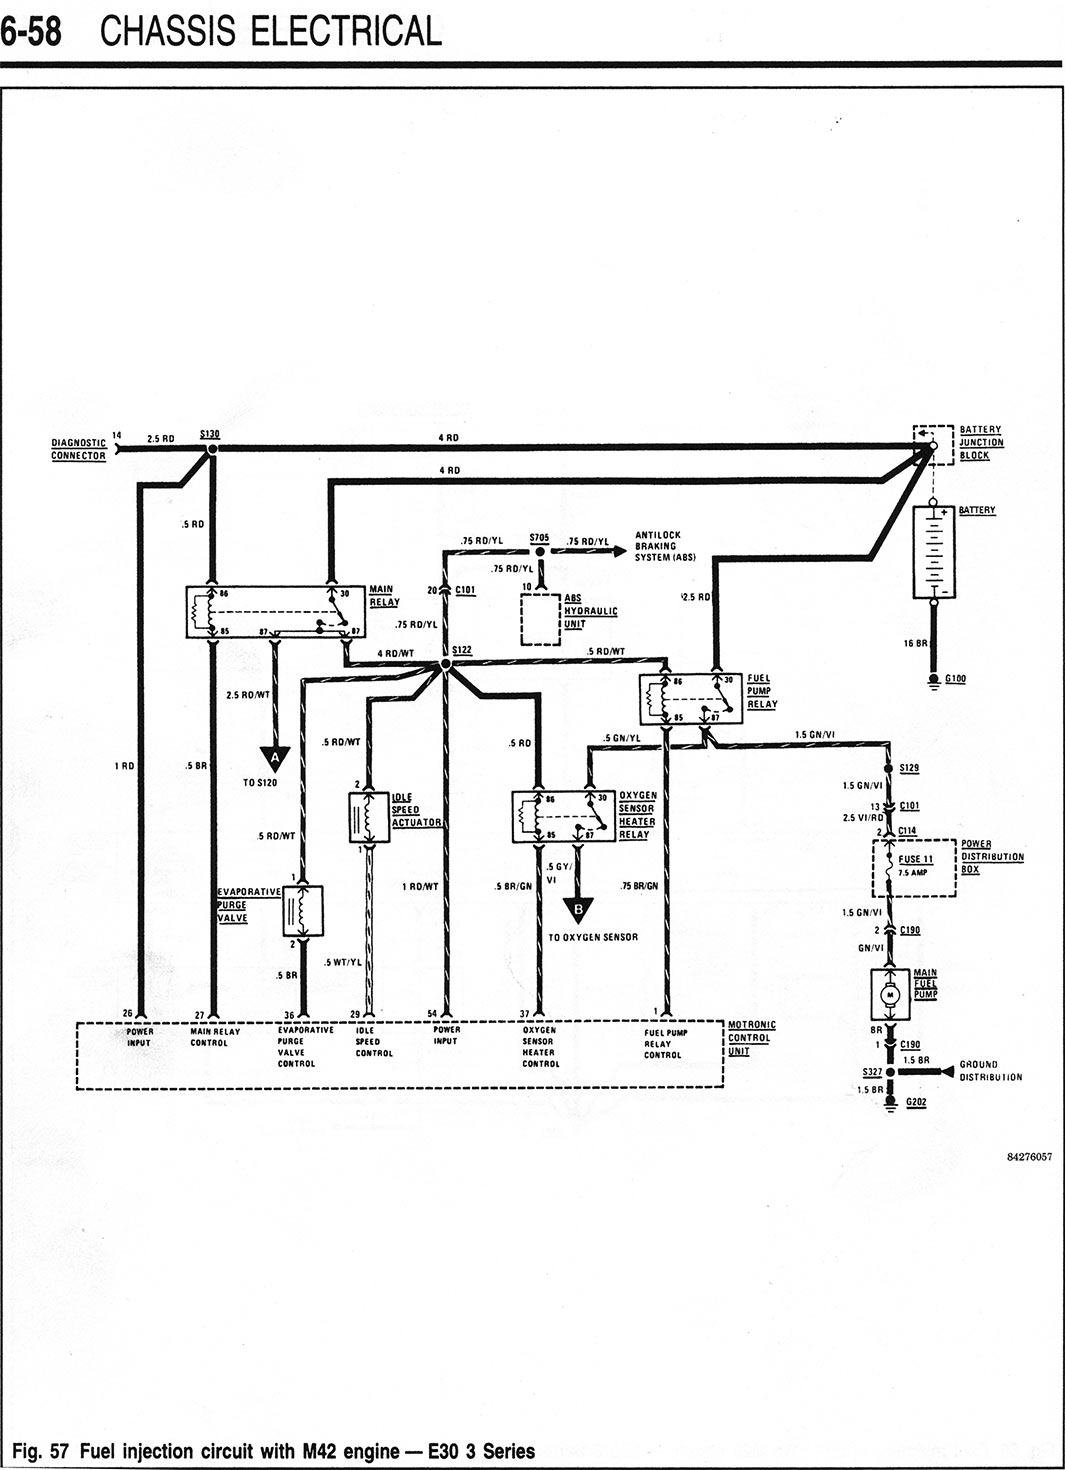 1985 Bmw 318i Engine Diagram Opinions About Wiring 1996 Z3 1991 Fuse Box Schematic Schematics Rh Parntesis Co 1995